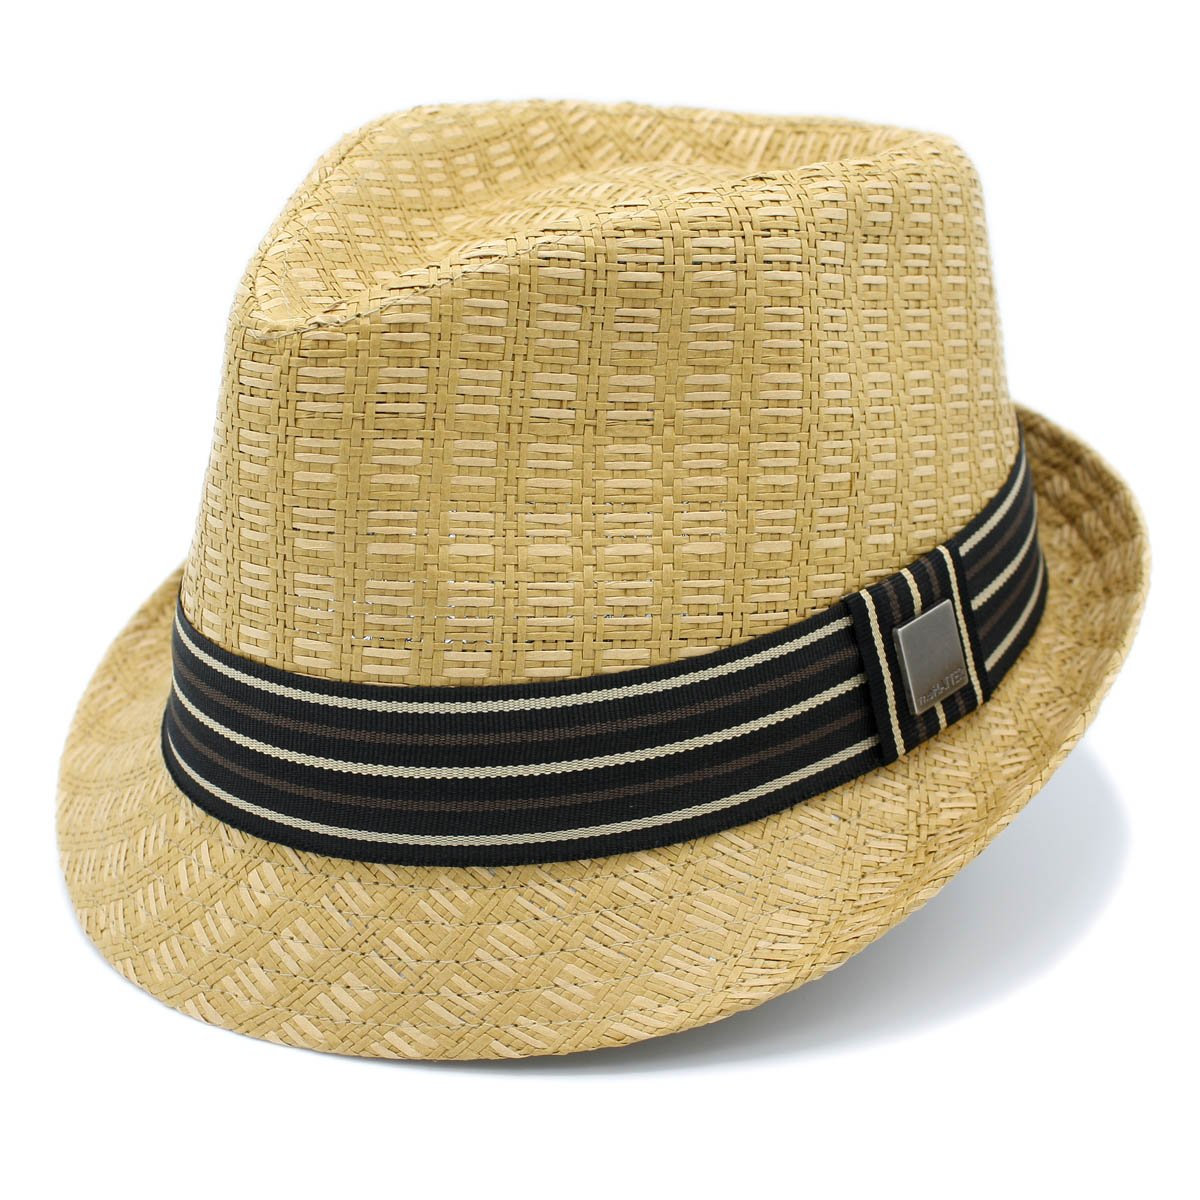 a29e0dbfe4963 The Hatter Classic Narrow Brim Roll Up Panama Fedora Sun Hat Beach Cap With  Band (C-Tan)